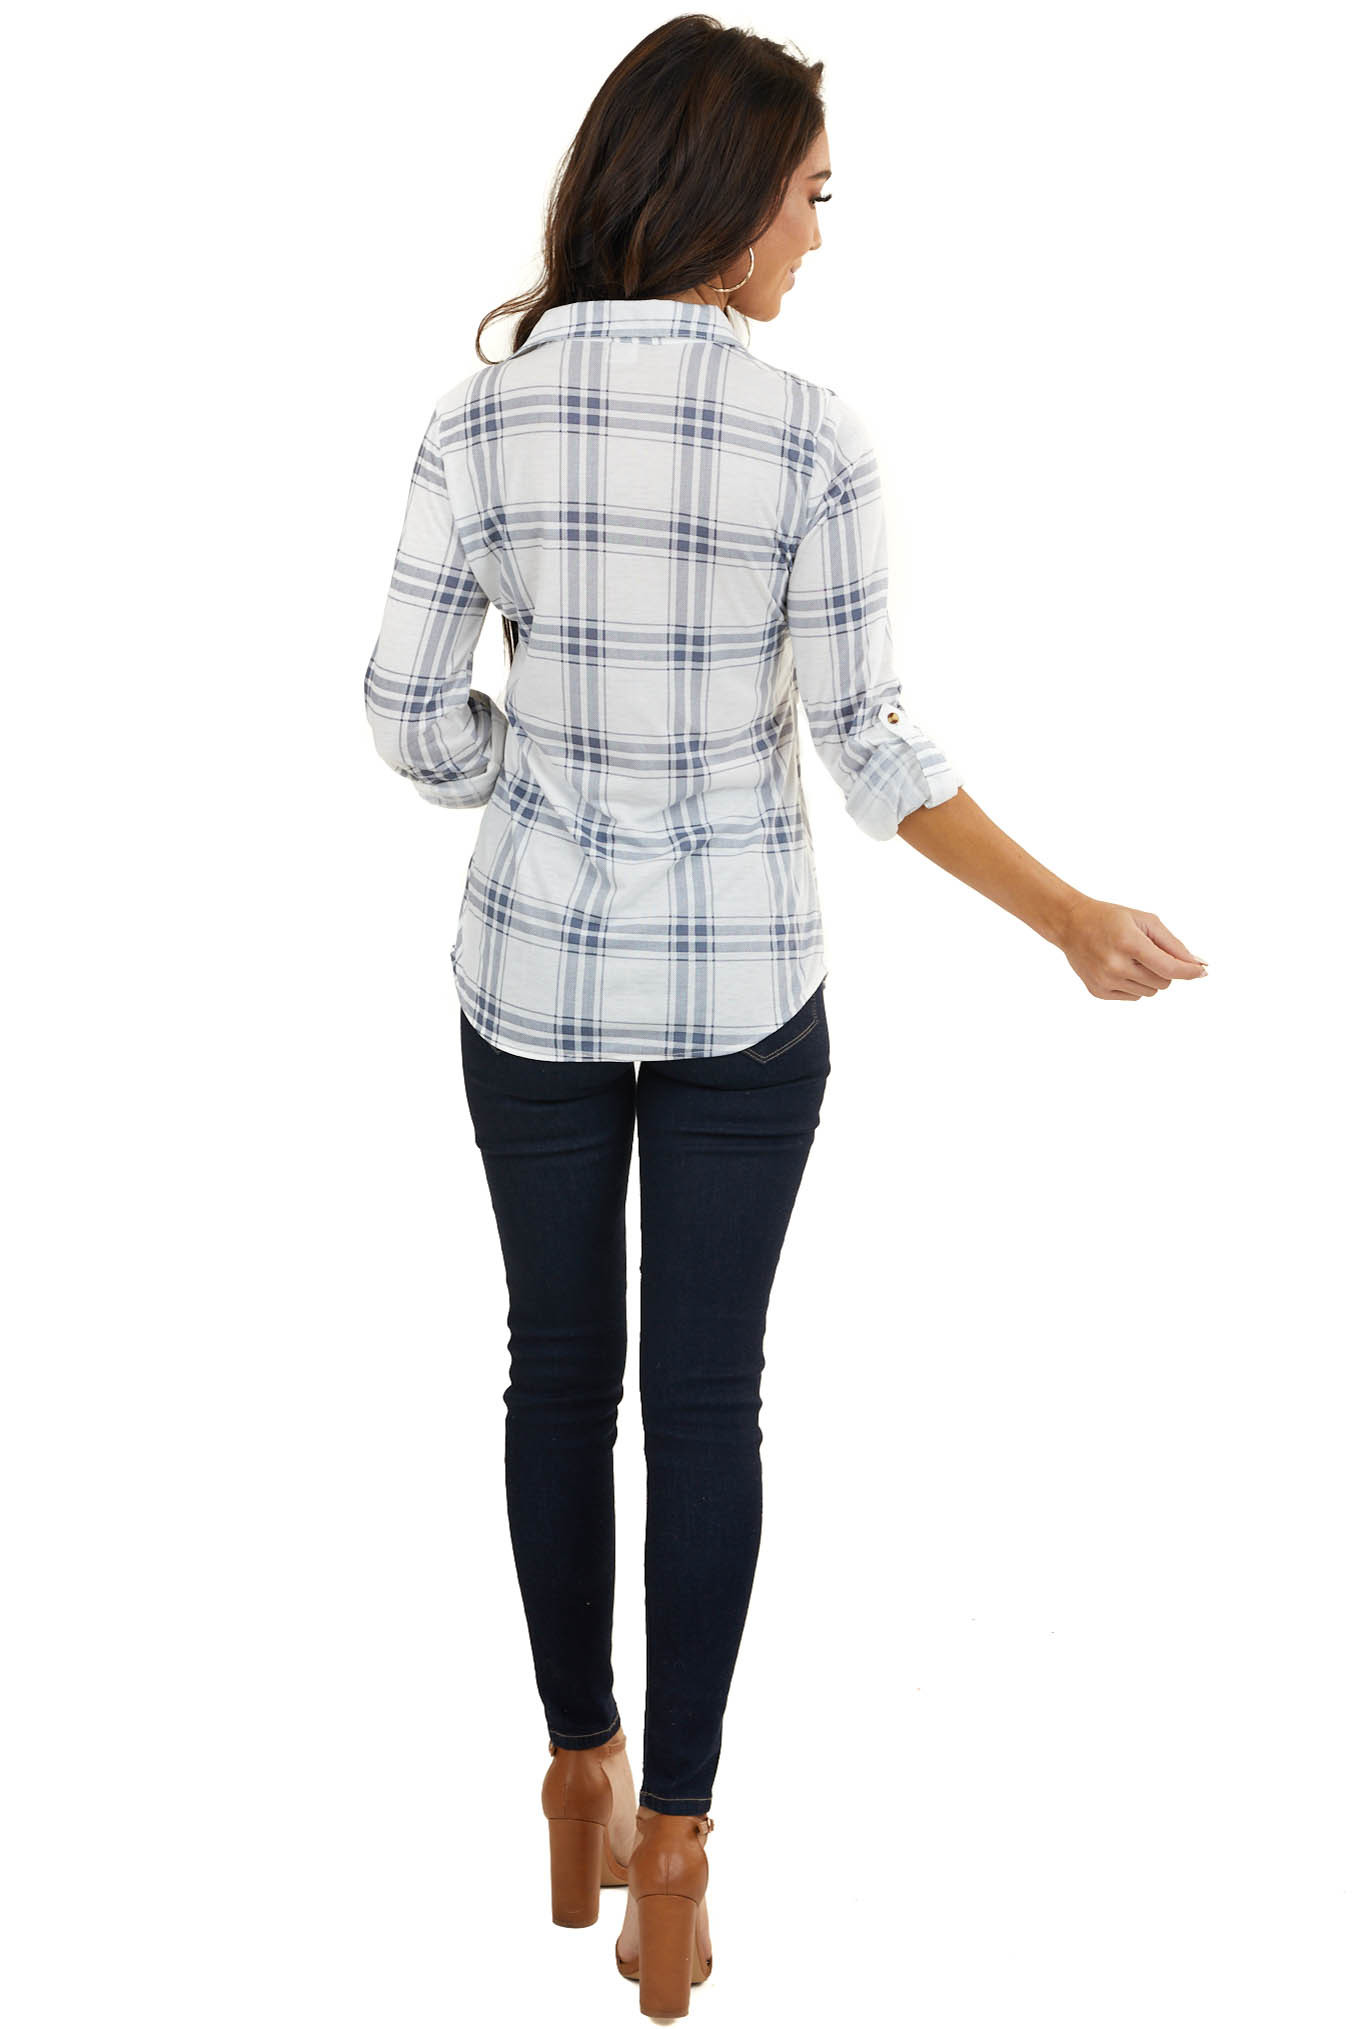 Ivory and Slate Plaid Button Up Top with Chest Pockets